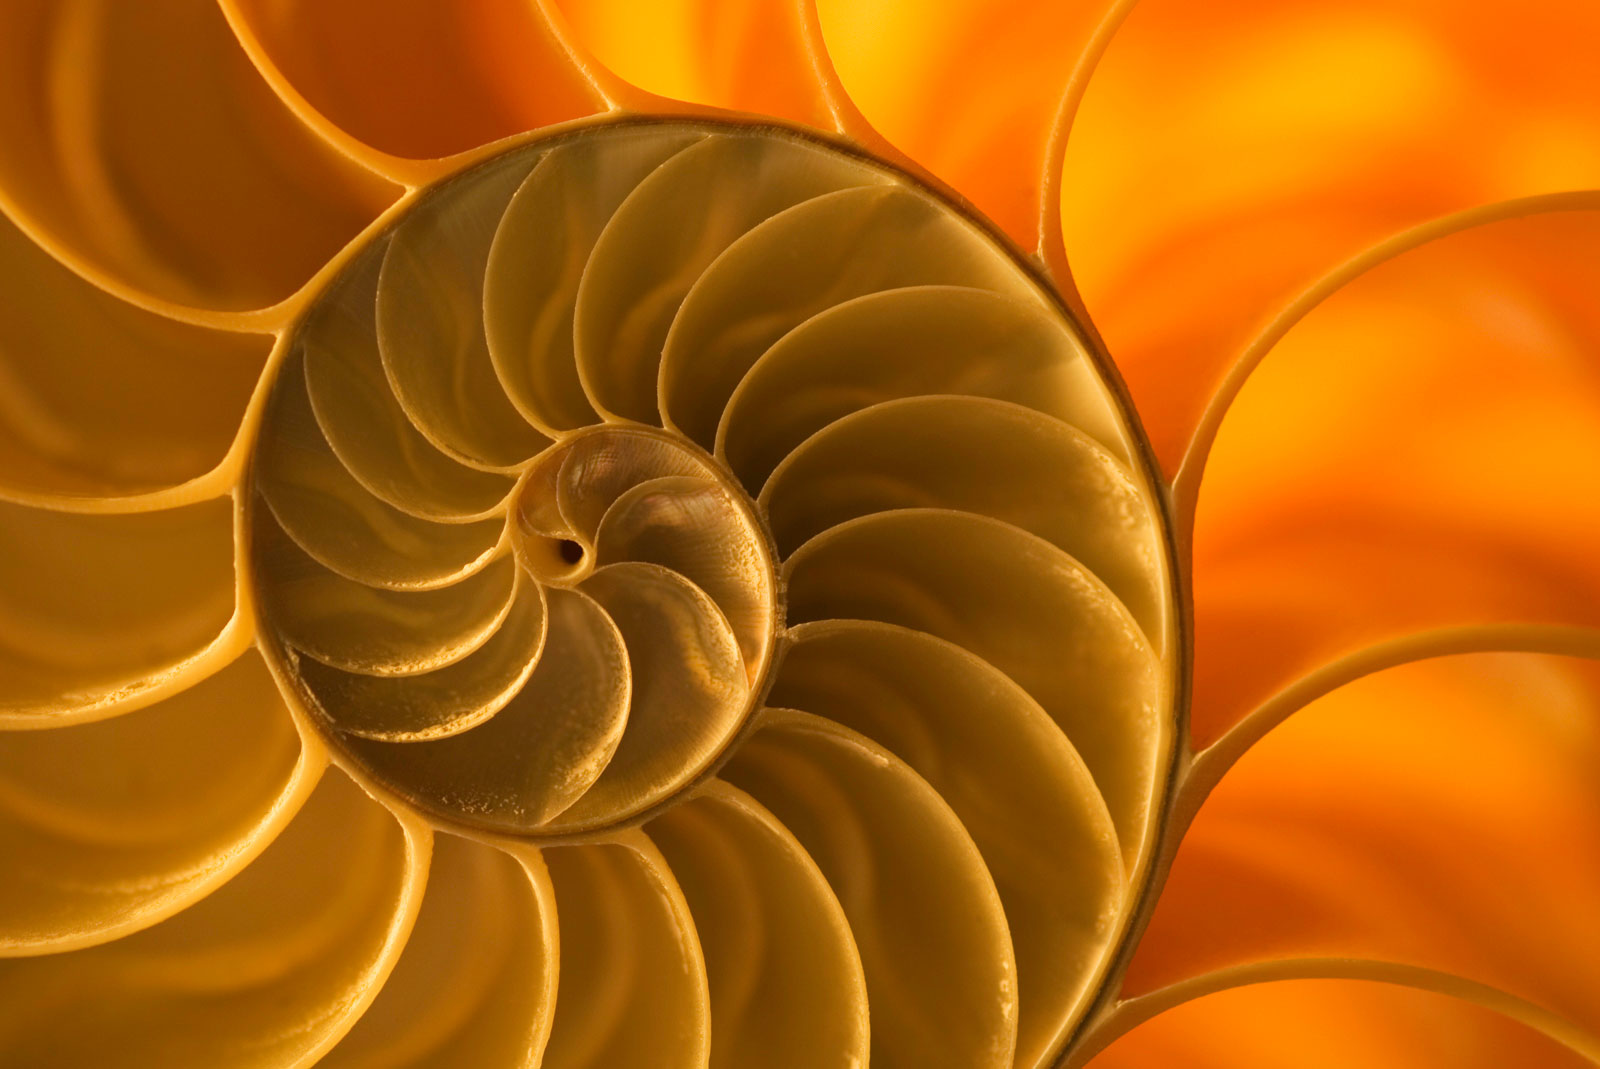 Nautilus shell, South Pacific Ocean